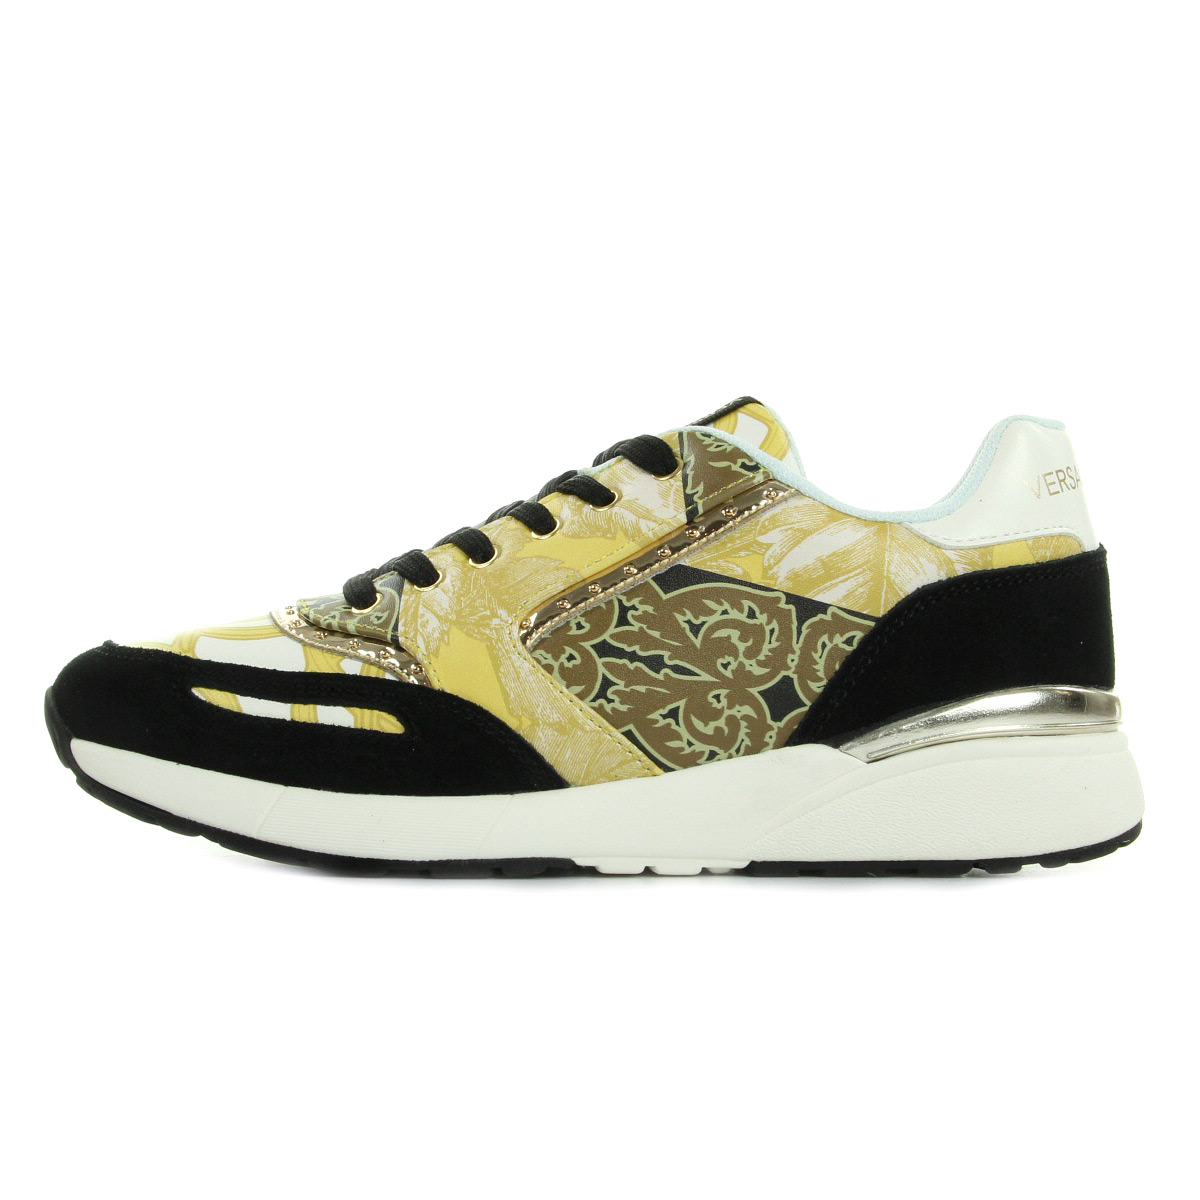 chaussures baskets versace jeans femme sneaker donna disg1coated printed taille ebay. Black Bedroom Furniture Sets. Home Design Ideas